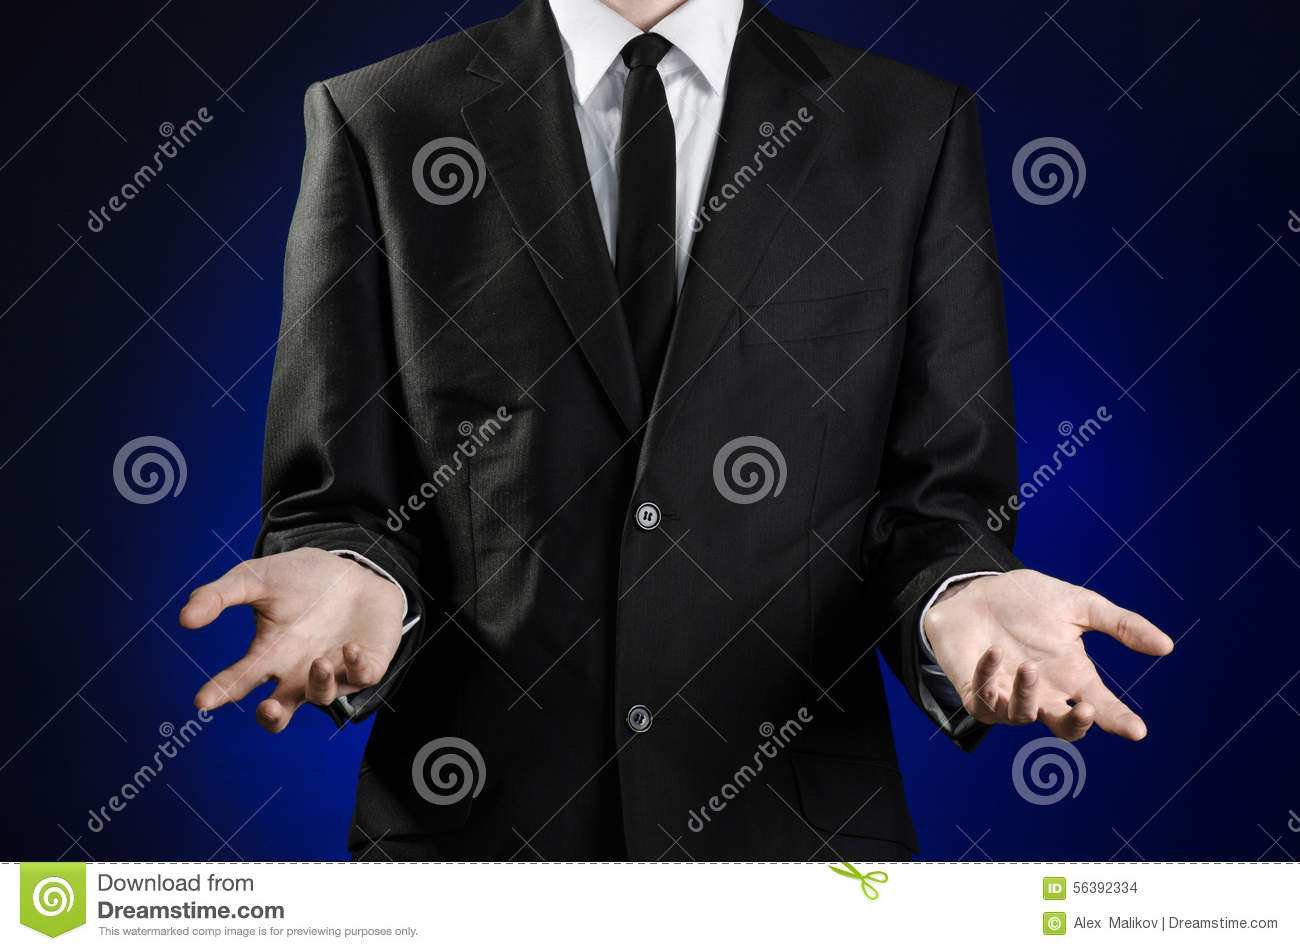 Businessman and gesture topic: a man in a black suit and white shirt showing gestures with hands on a dark blue background in stud